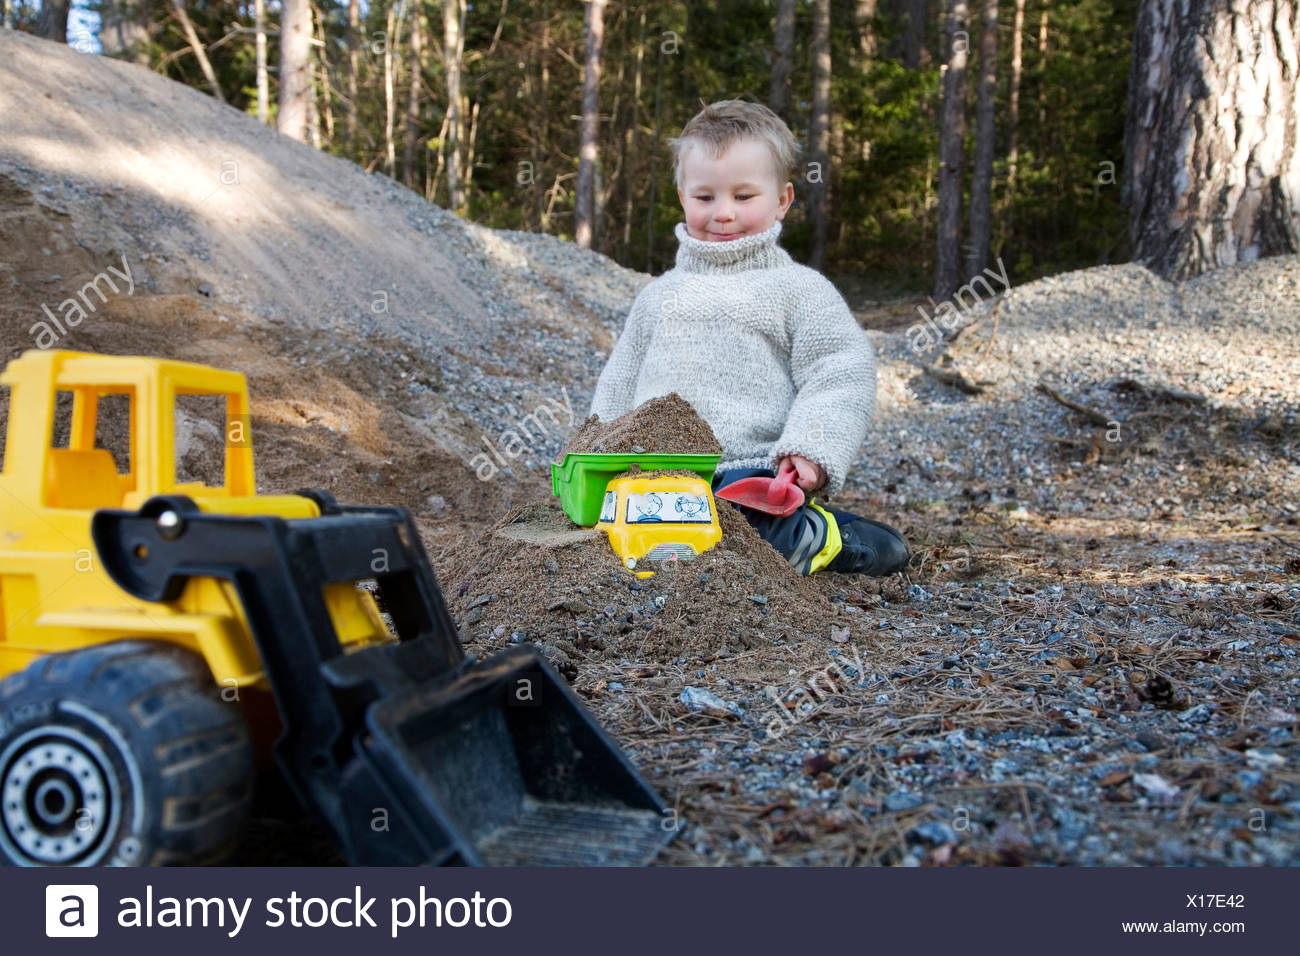 Little boy sitting in sandbox with cropped toy backhoe in foreground - Stock Image